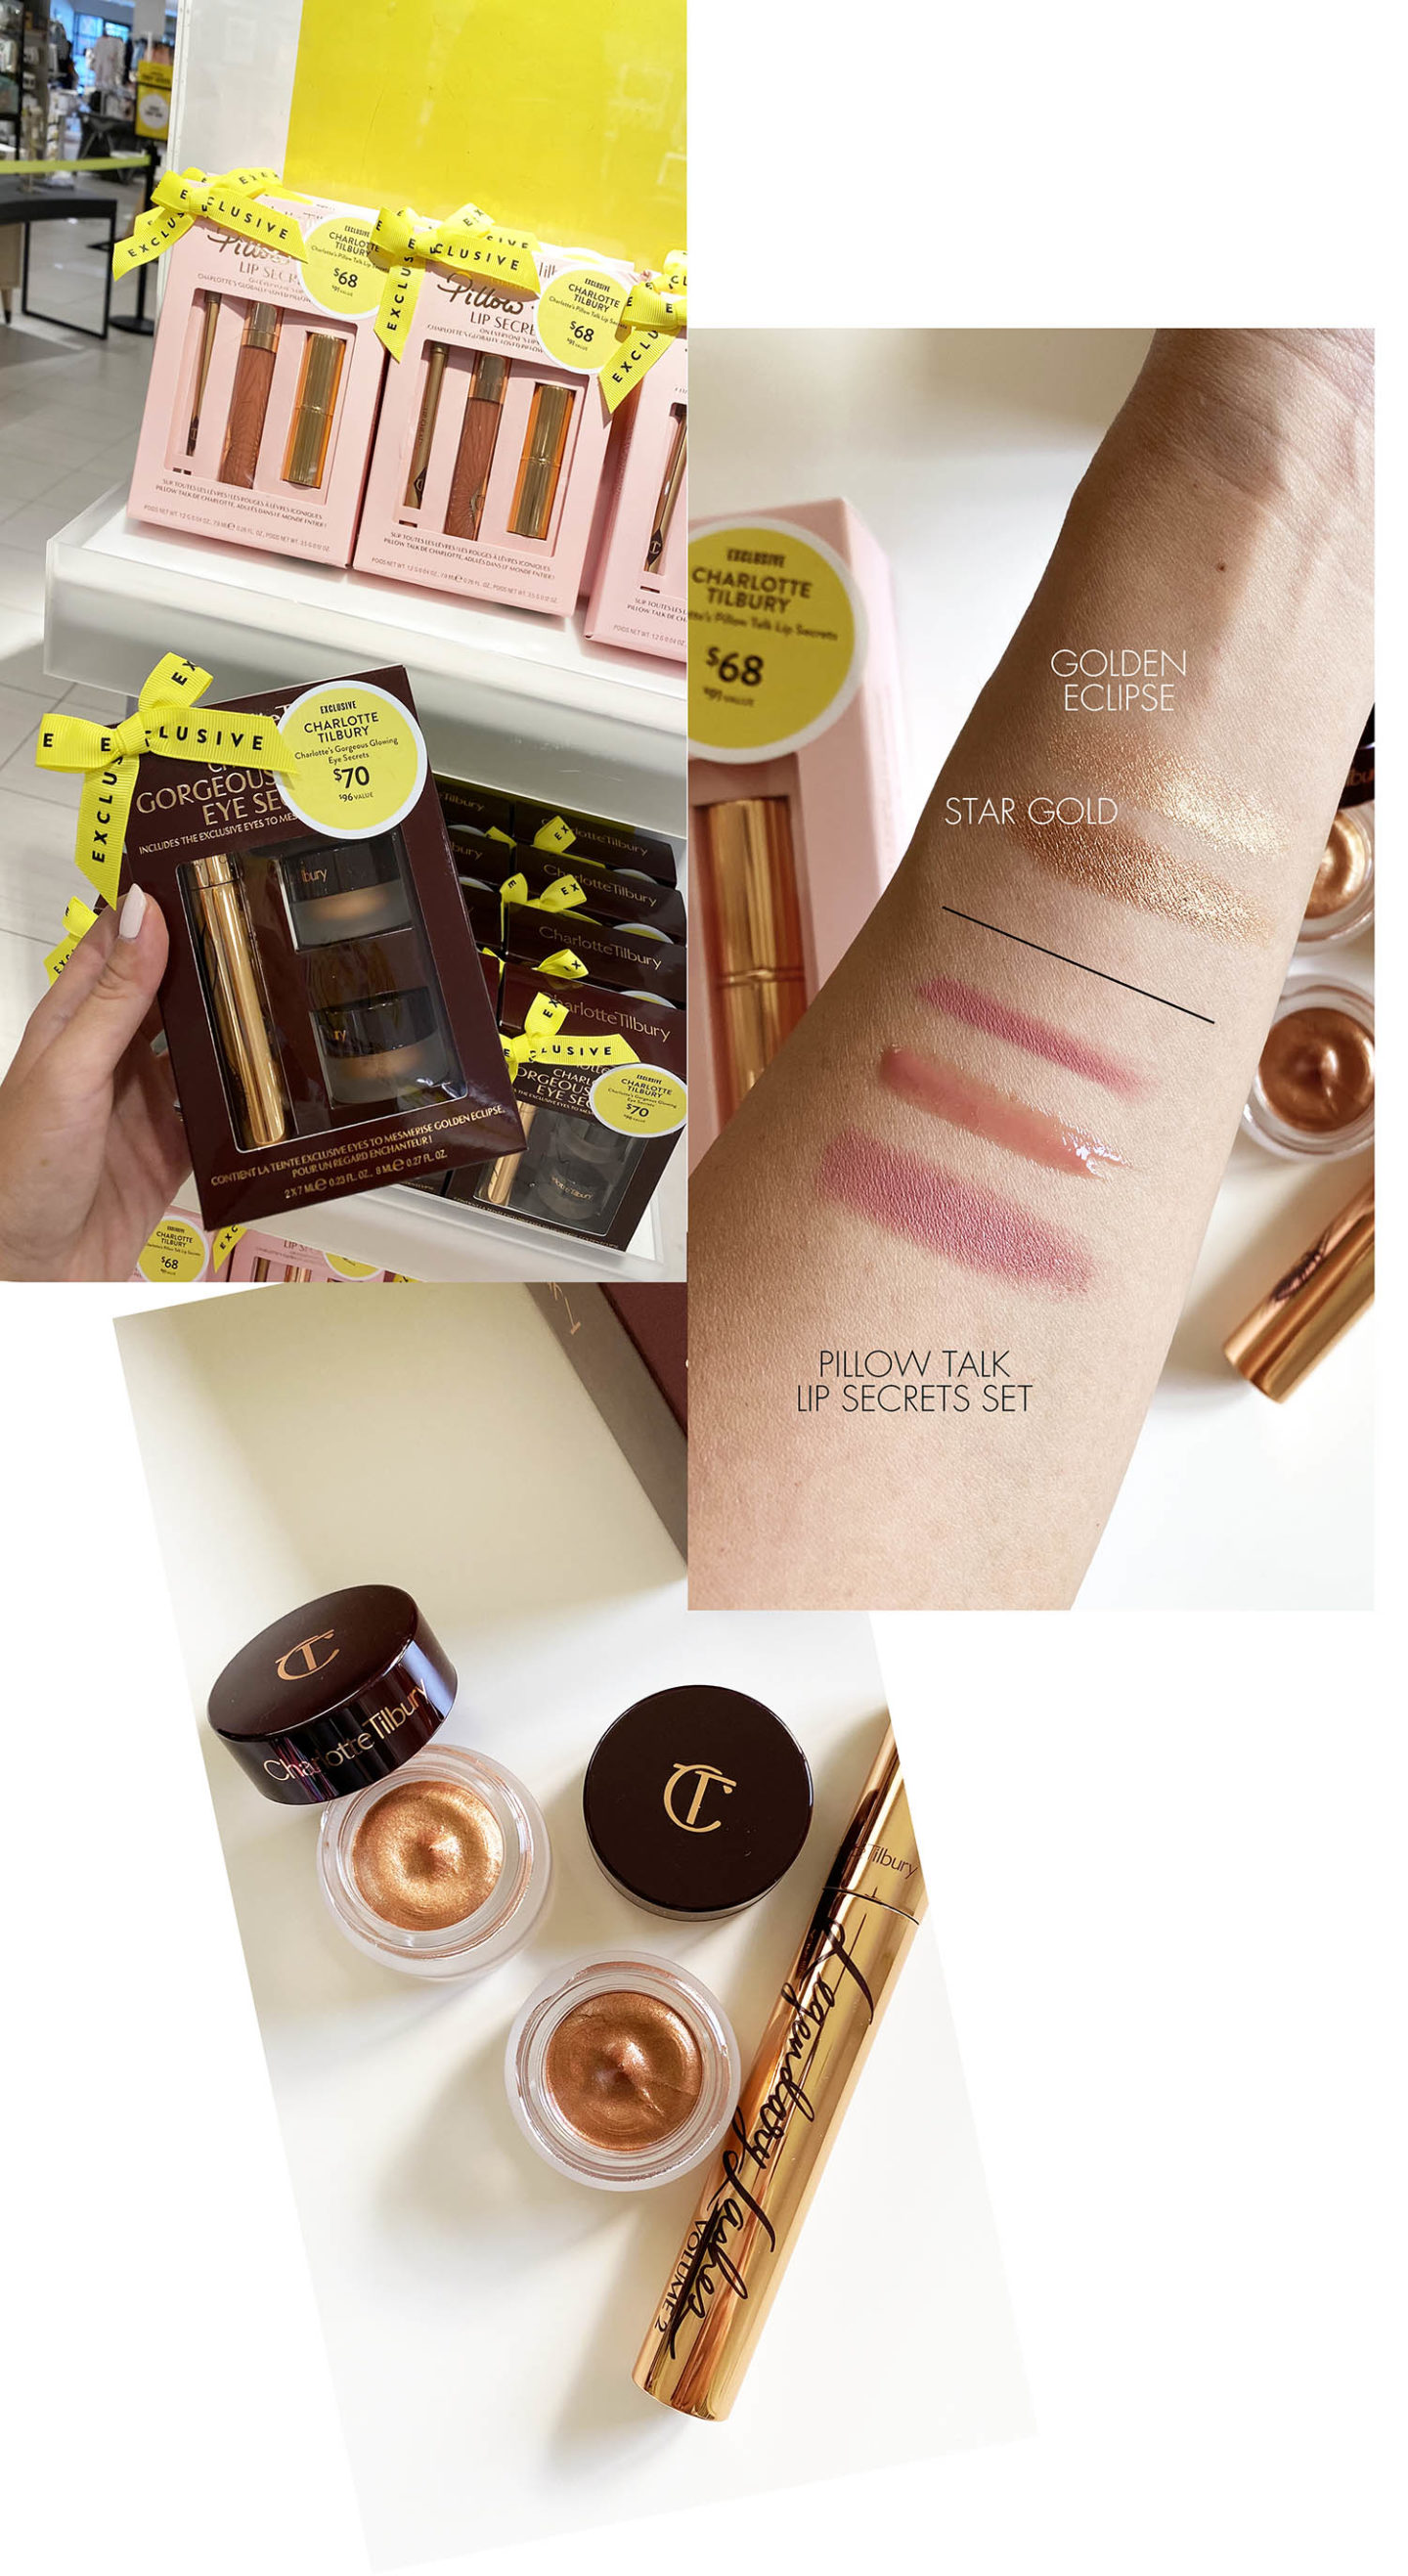 Nordstrom Sale Beauty Exclusives Charlotte Tilbury Sets and Swatches